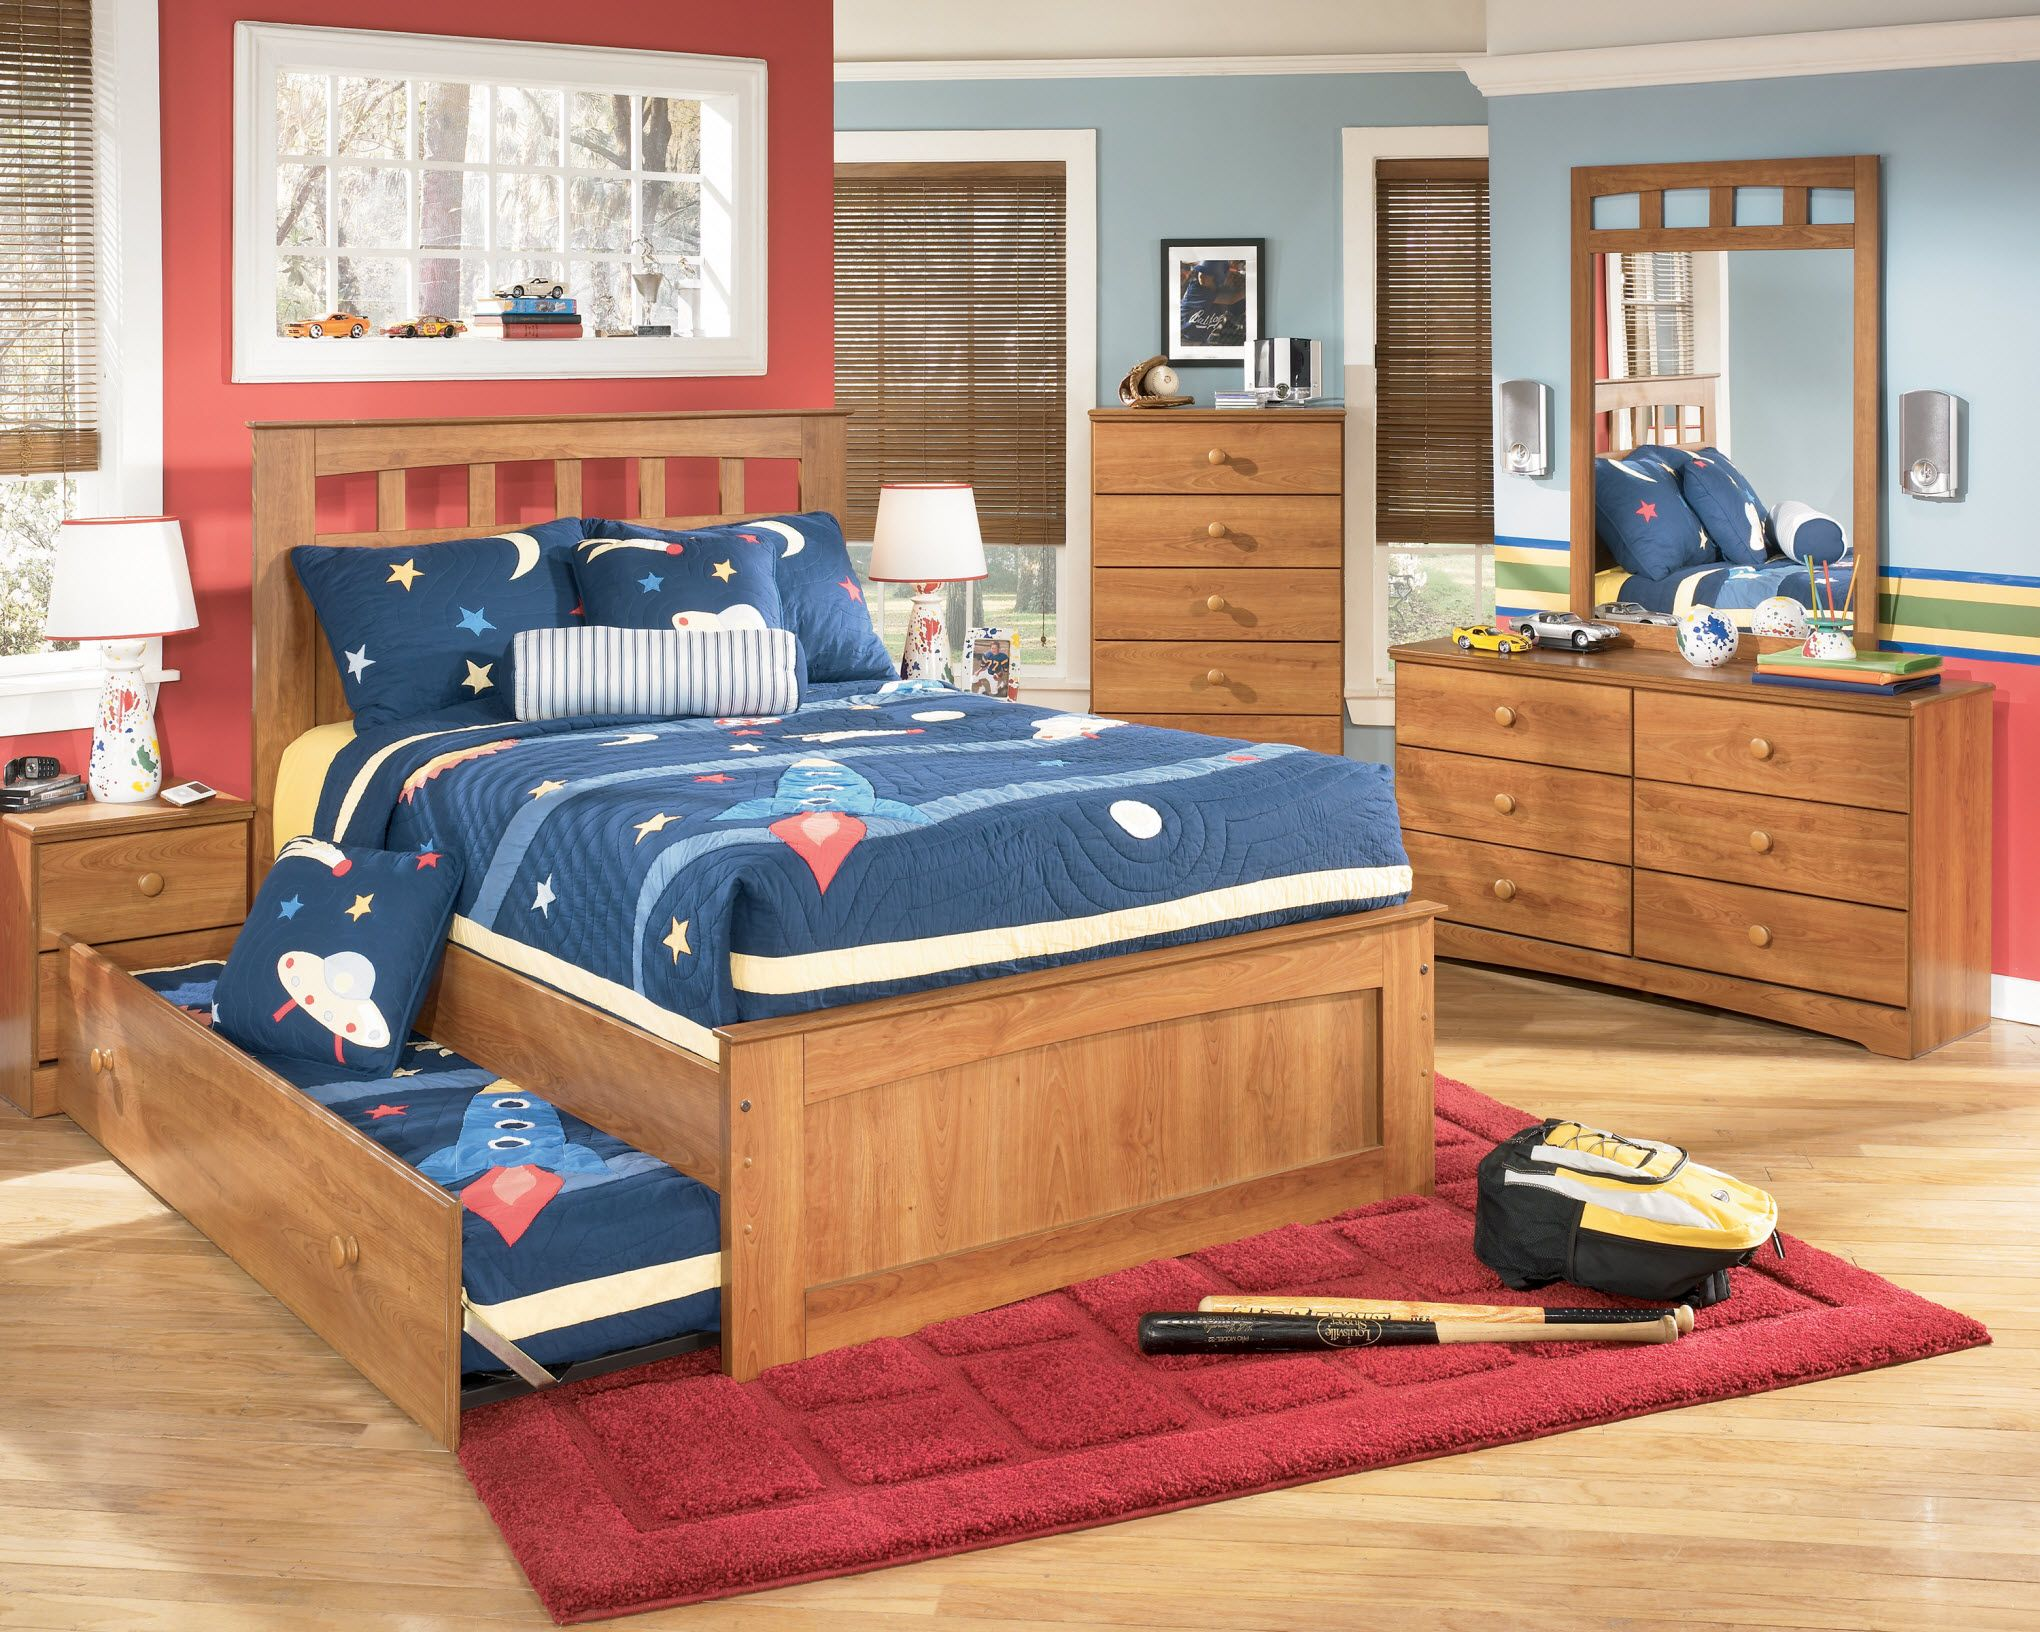 16 Cool Boys Bedroom Sets Ideas Ome Speak  With Regard To Really Encourage Decor Red Fluffy Carpet Tiles Corner Storage Cabinet